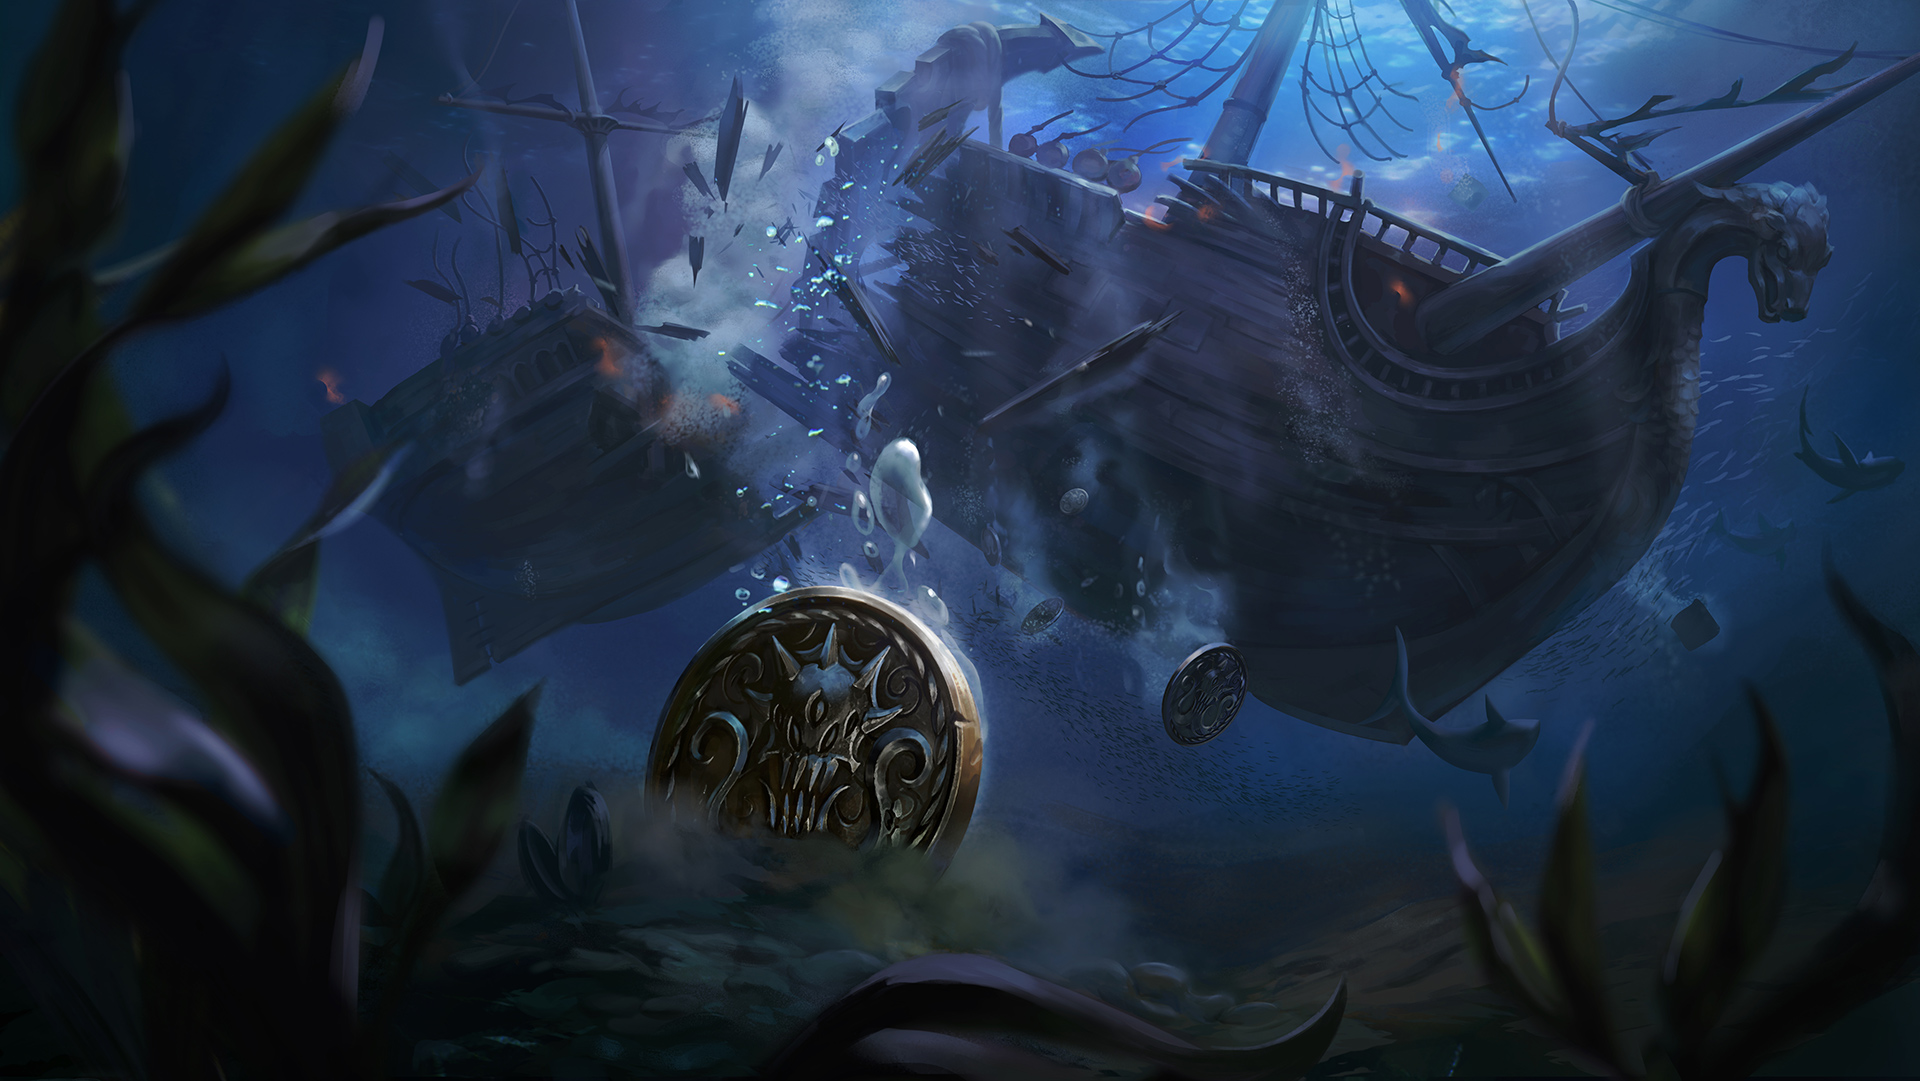 Nautilus Dead in the Water